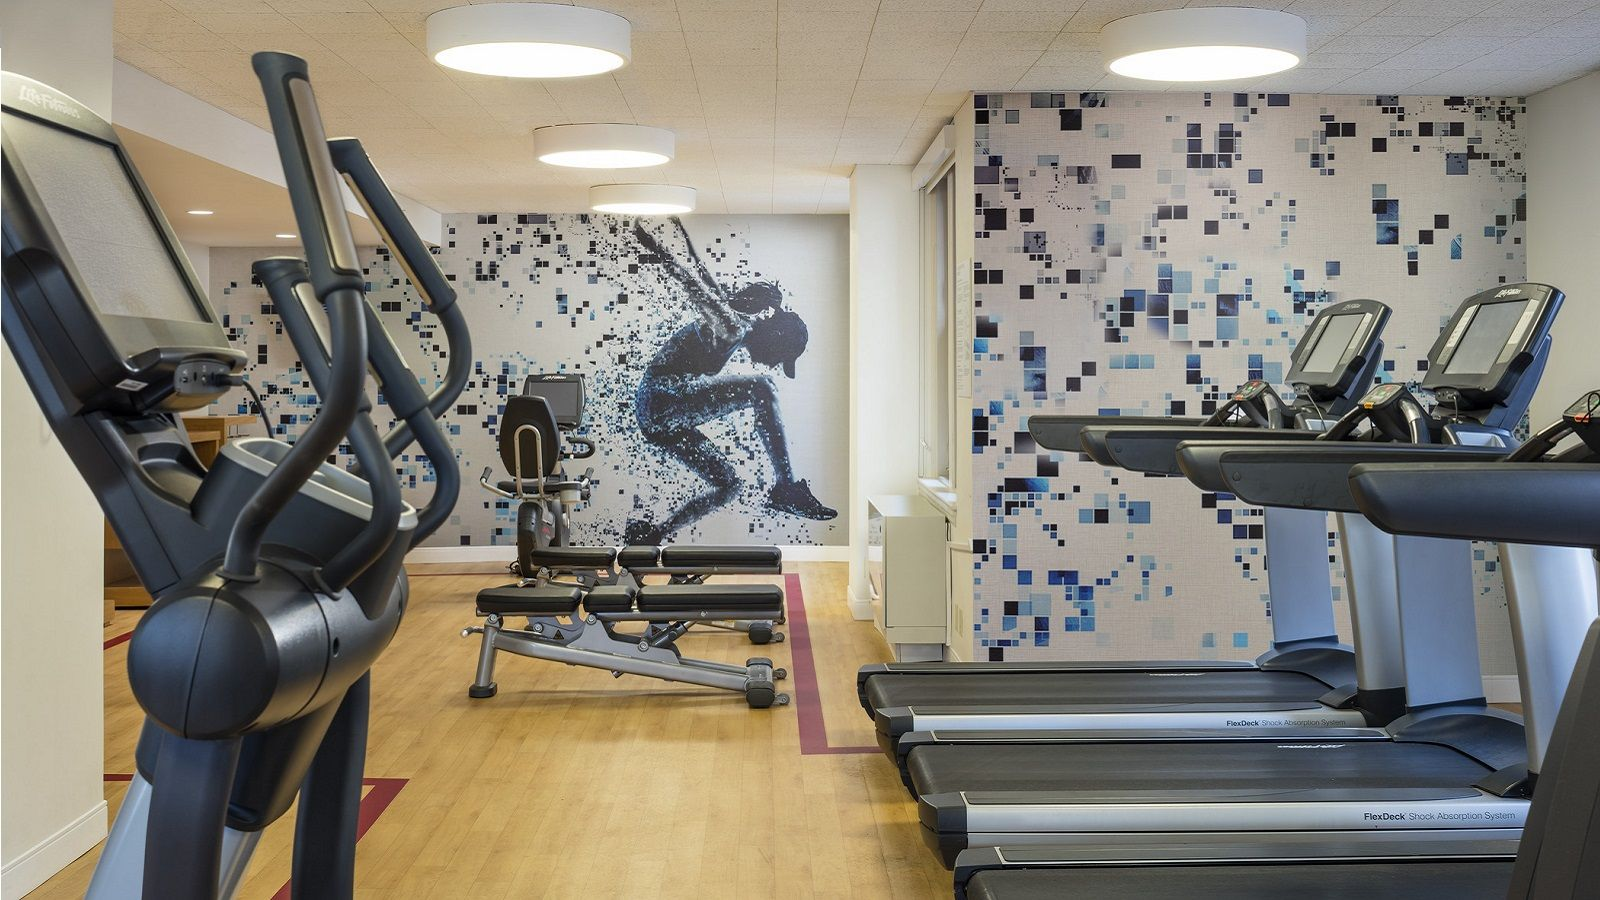 Hotel Features - Fitness Center